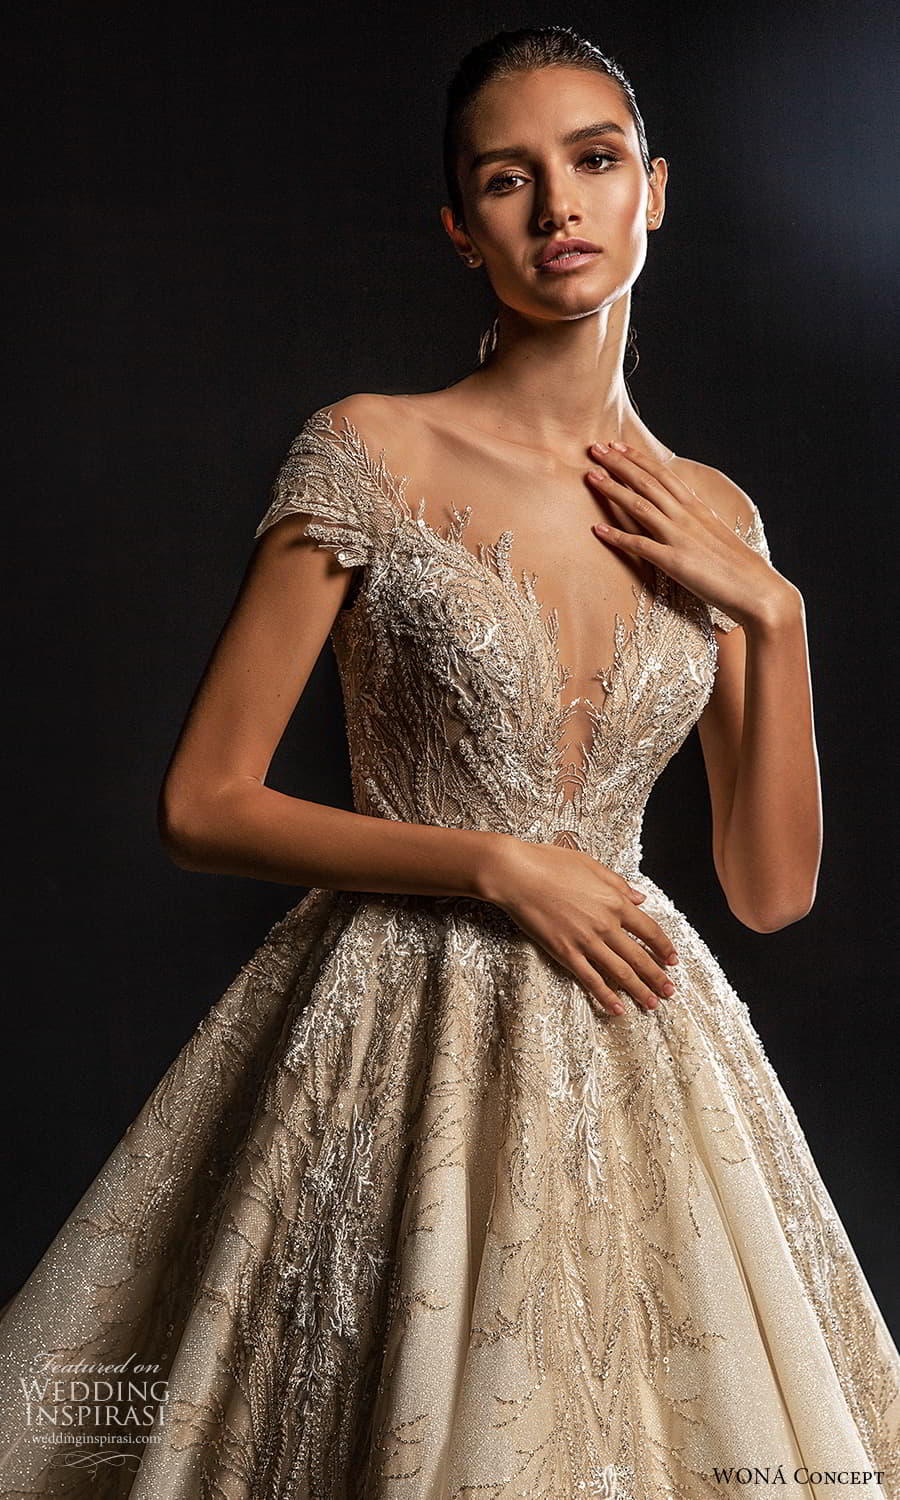 wona concept 2022 bridal cap sleeves v neckline fully embellished a line ball gown wedding dress chapel train (7) zv